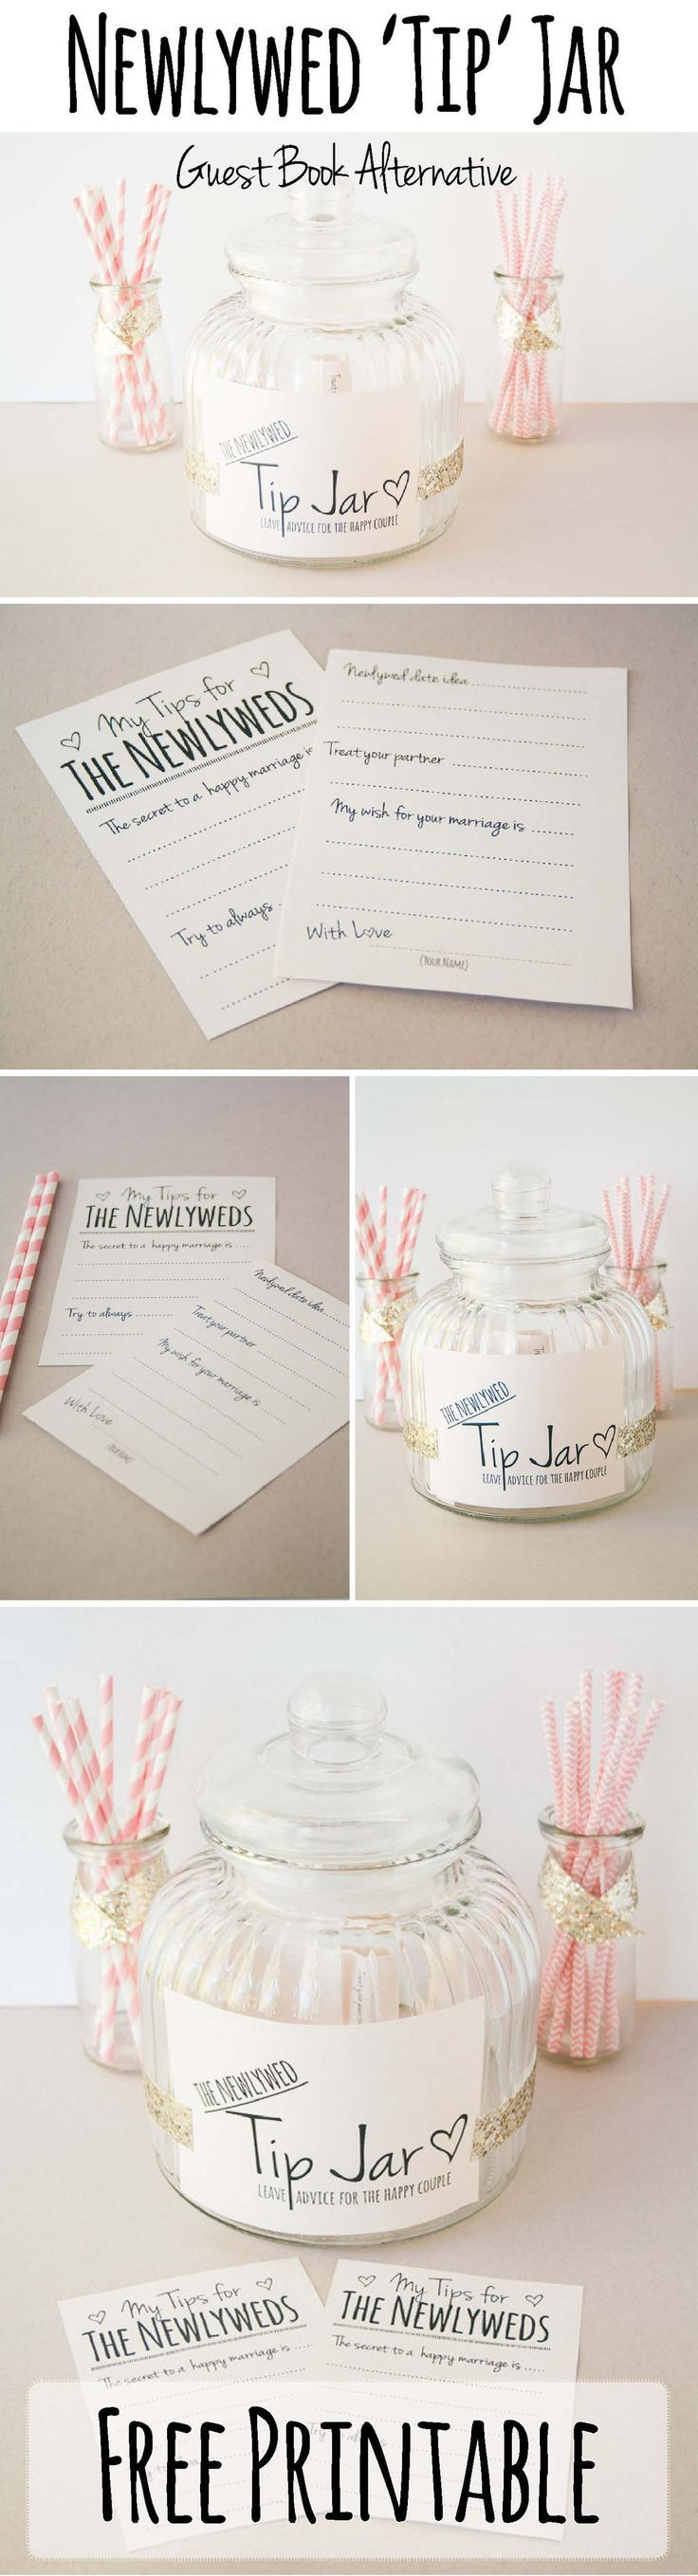 confetti daydreams wedding invitations%0A Here u    s how to make this cute Tip Jar for your wedding as an adorable guest  book